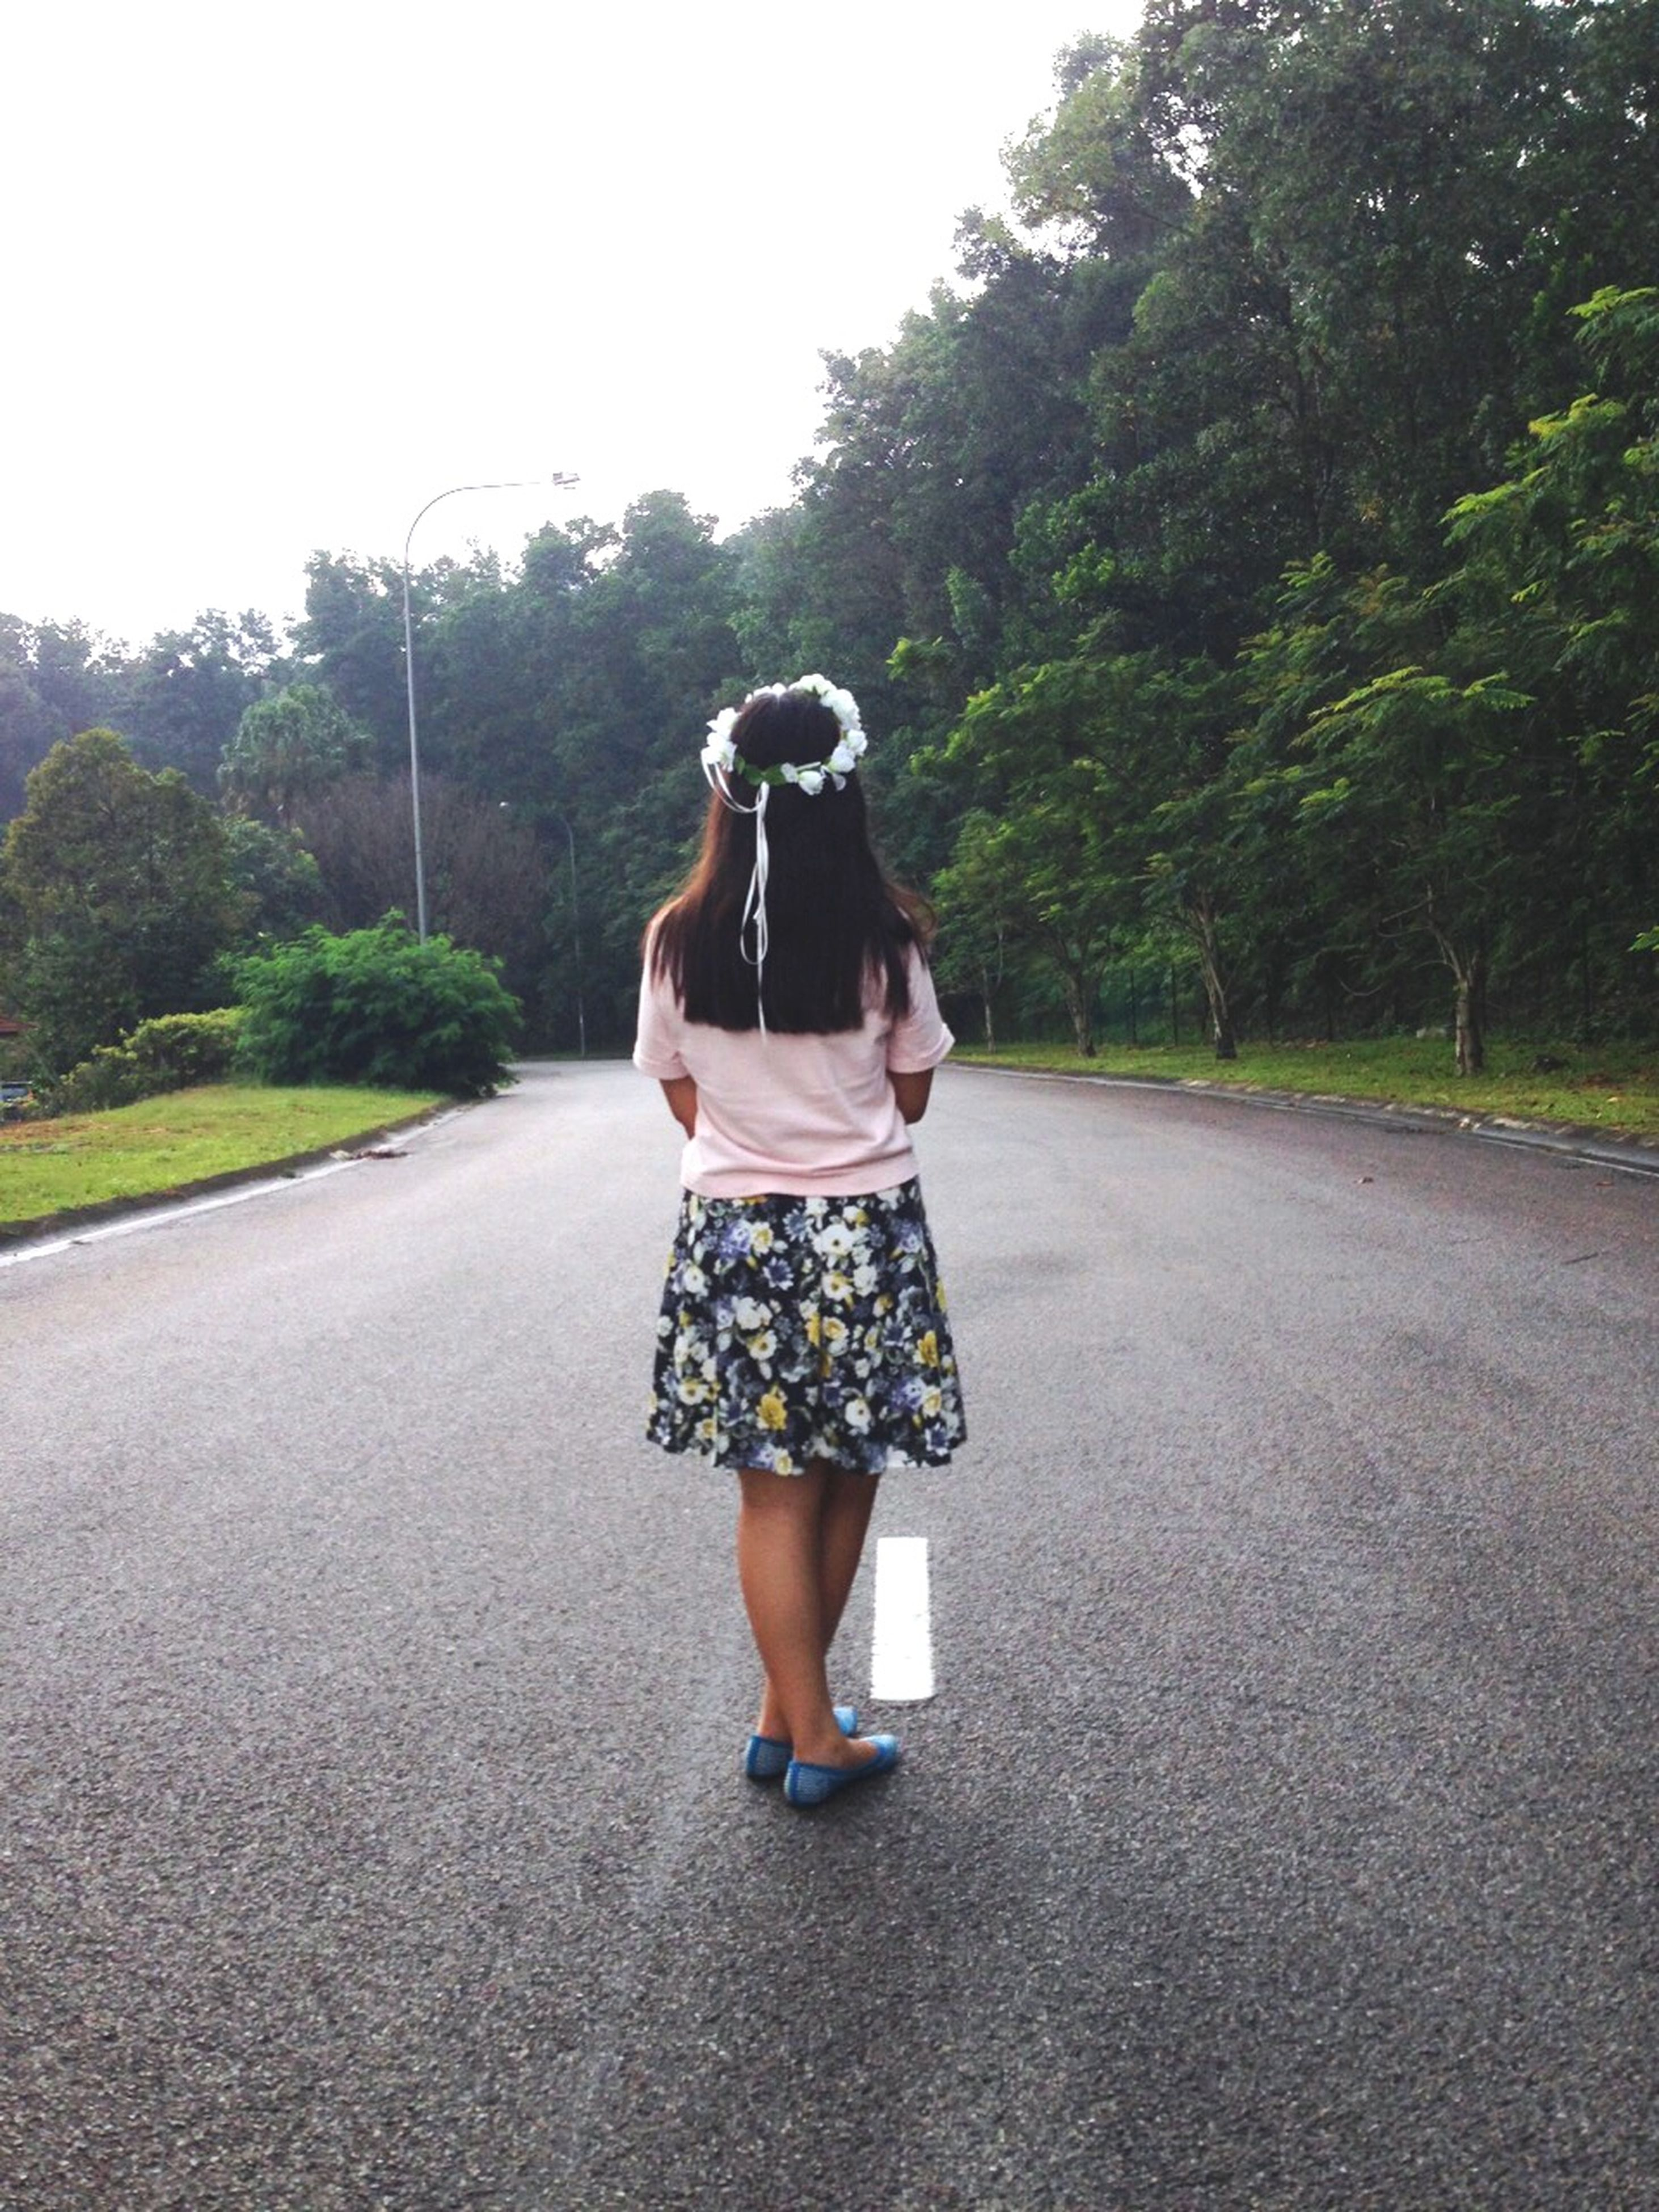 full length, lifestyles, road, casual clothing, tree, young adult, leisure activity, the way forward, young women, street, rear view, person, front view, transportation, day, standing, outdoors, walking